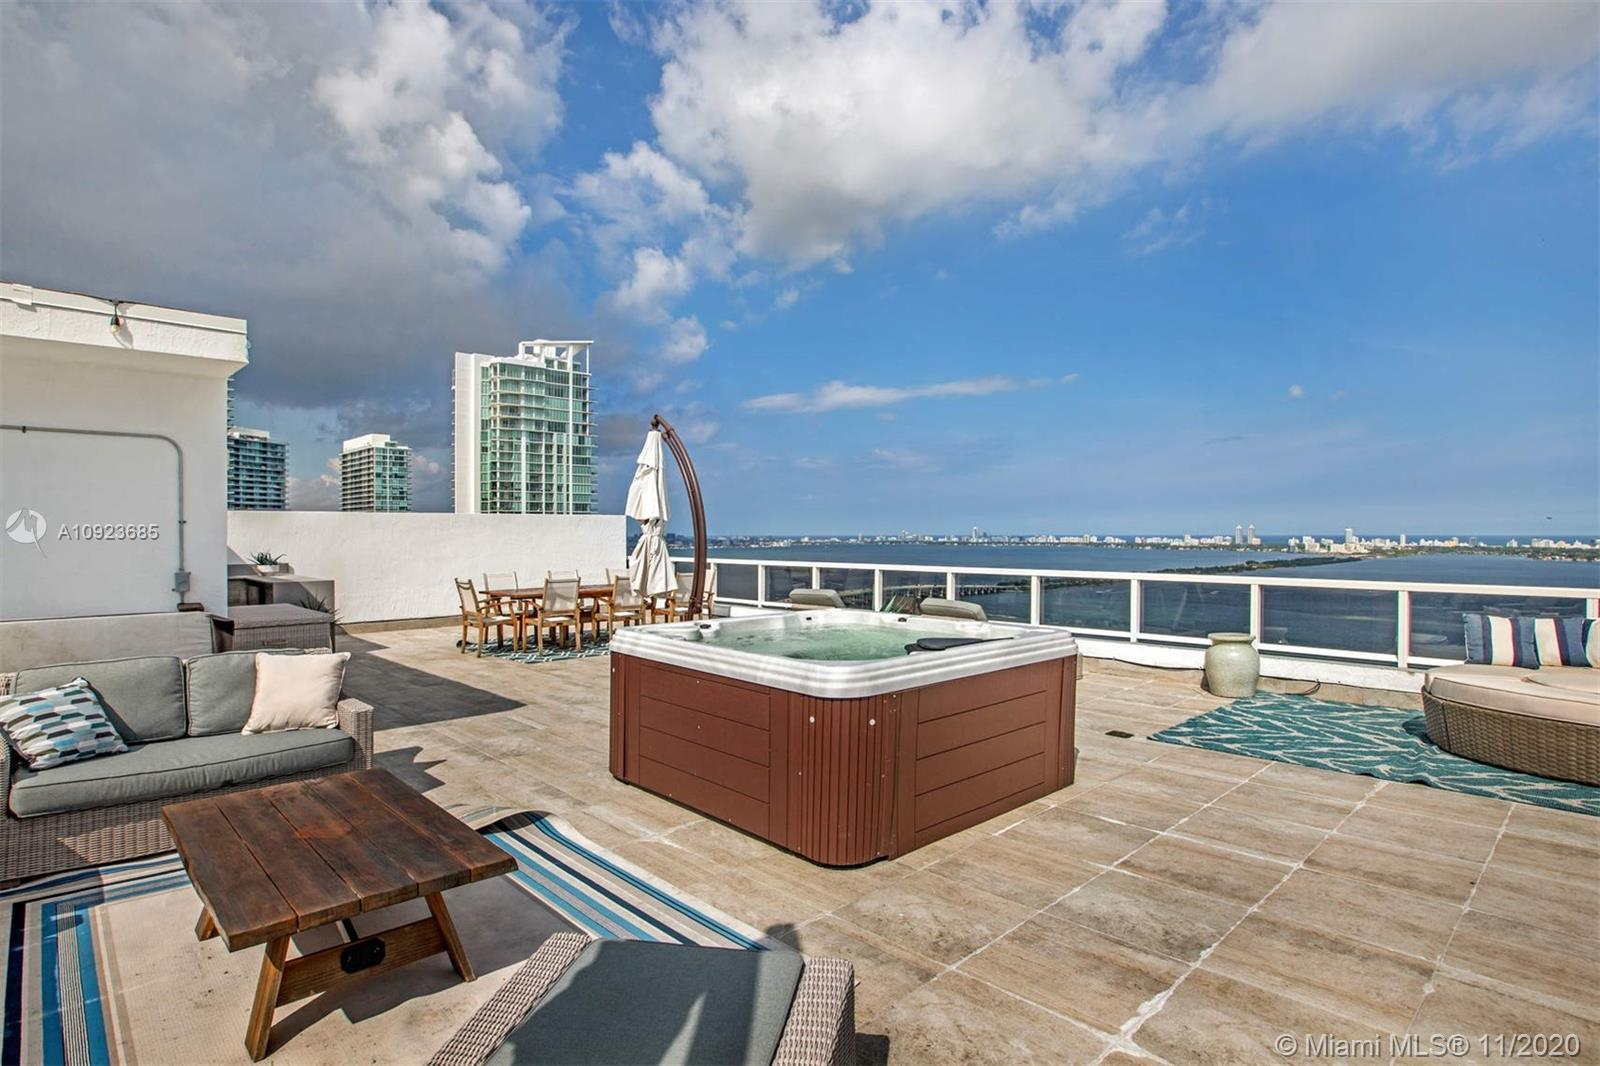 MAJOR PRICE REDUCTION!! BEST PRICED DUPLEX PENTHOUSE IN MIAMI with PRIVATE ROOFTOP